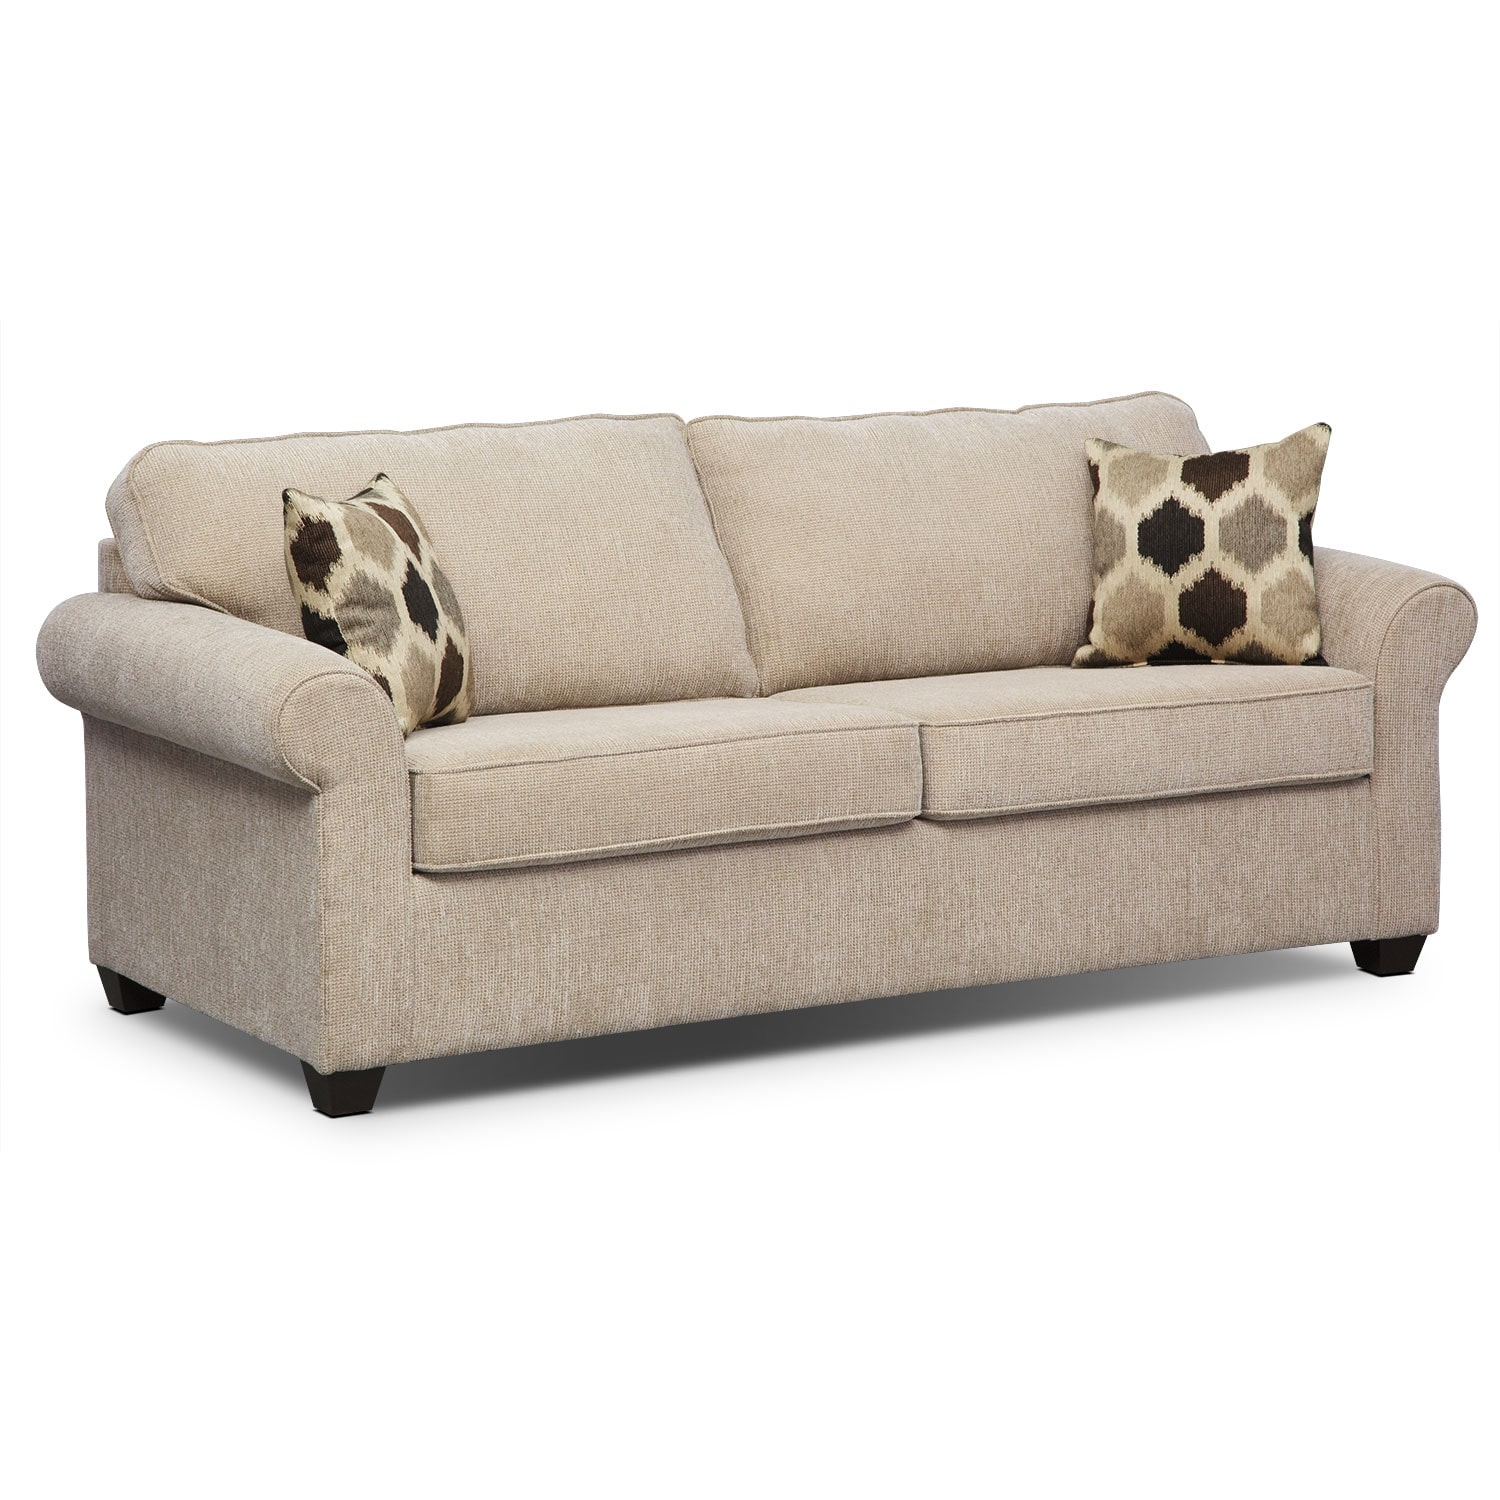 Fletcher queen innerspring sleeper sofa value city furniture Sofa sleeper loveseat